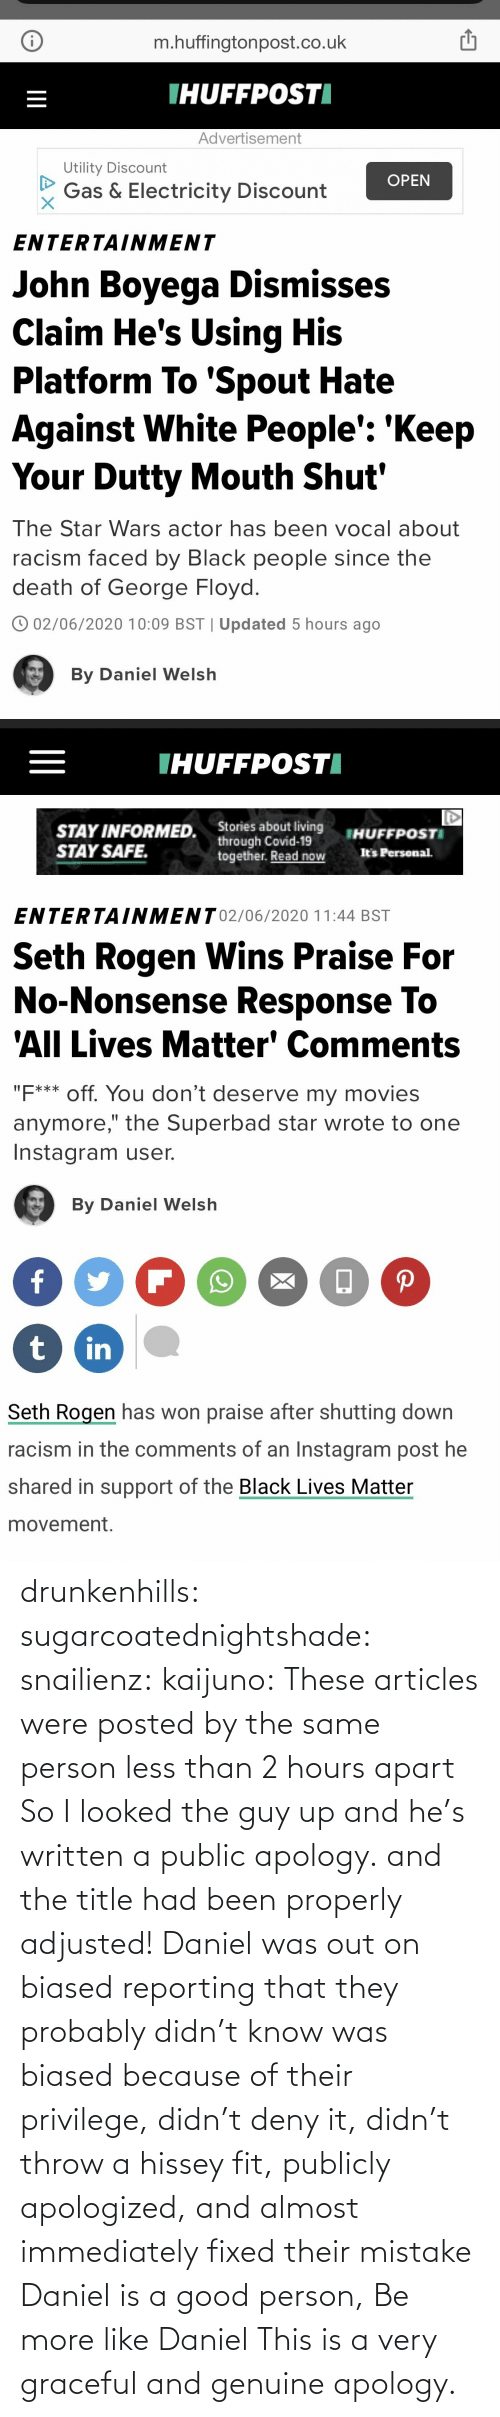 privilege: drunkenhills:  sugarcoatednightshade:   snailienz:  kaijuno: These articles were posted by the same person less than 2 hours apart    So I looked the guy up and he's written a public apology. and the title had been properly adjusted!    Daniel was out on biased reporting that they probably didn't know was biased because of their privilege, didn't deny it, didn't throw a hissey fit, publicly apologized, and almost immediately fixed their mistake Daniel is a good person, Be more like Daniel     This is a very graceful and genuine apology.